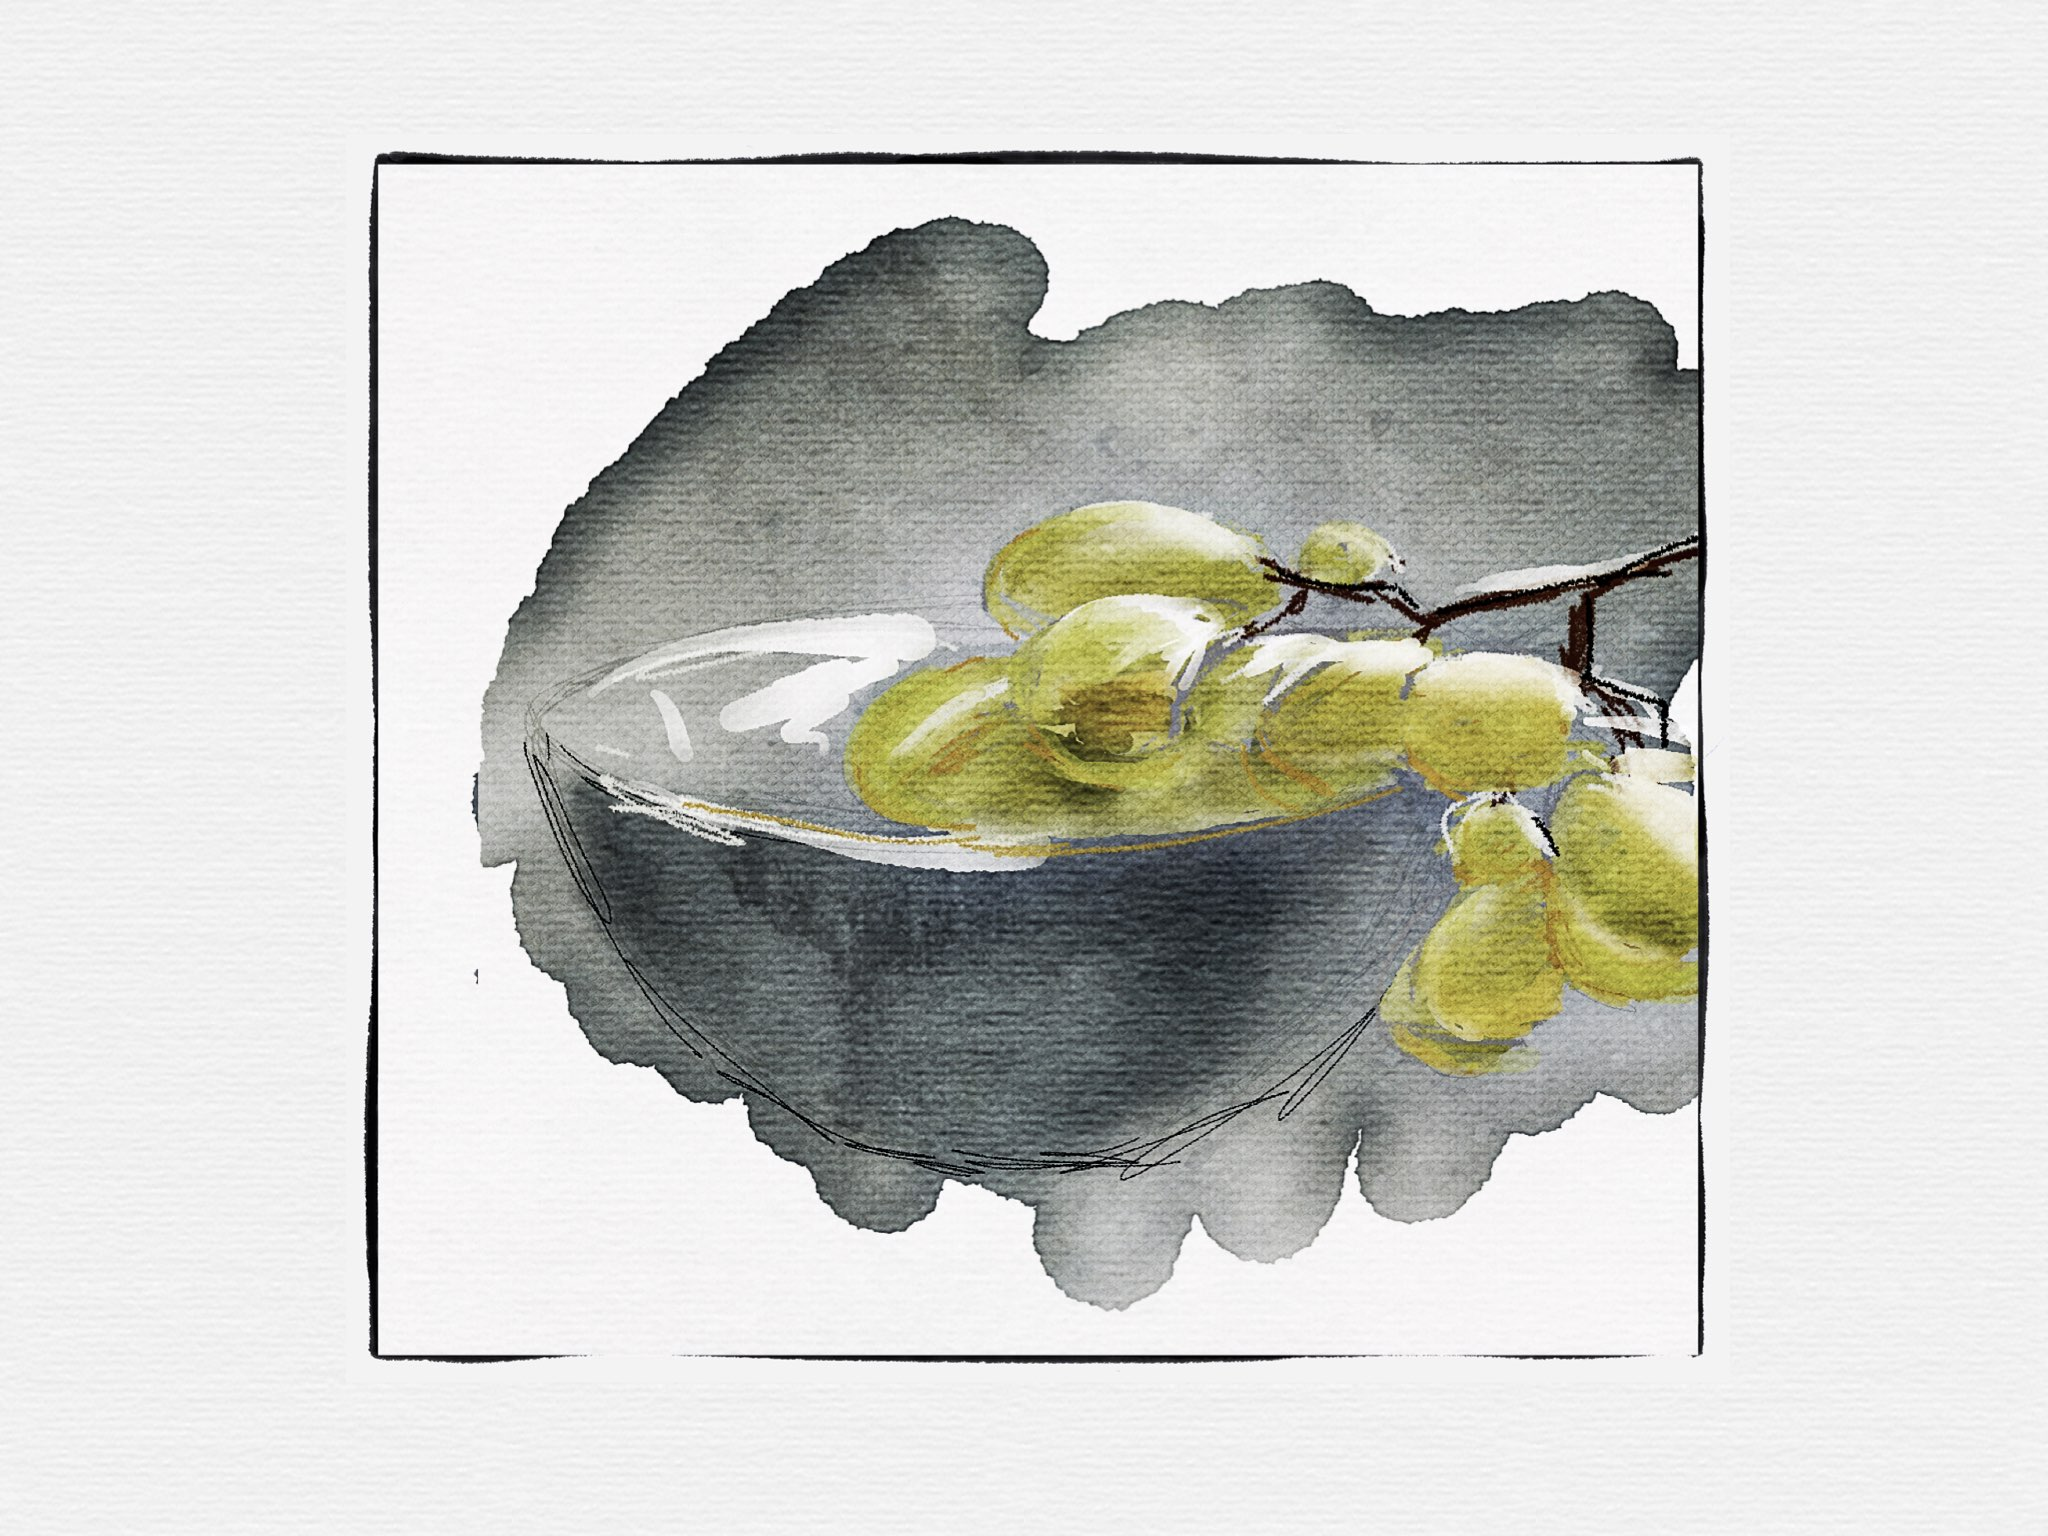 Grapes made with Sketches